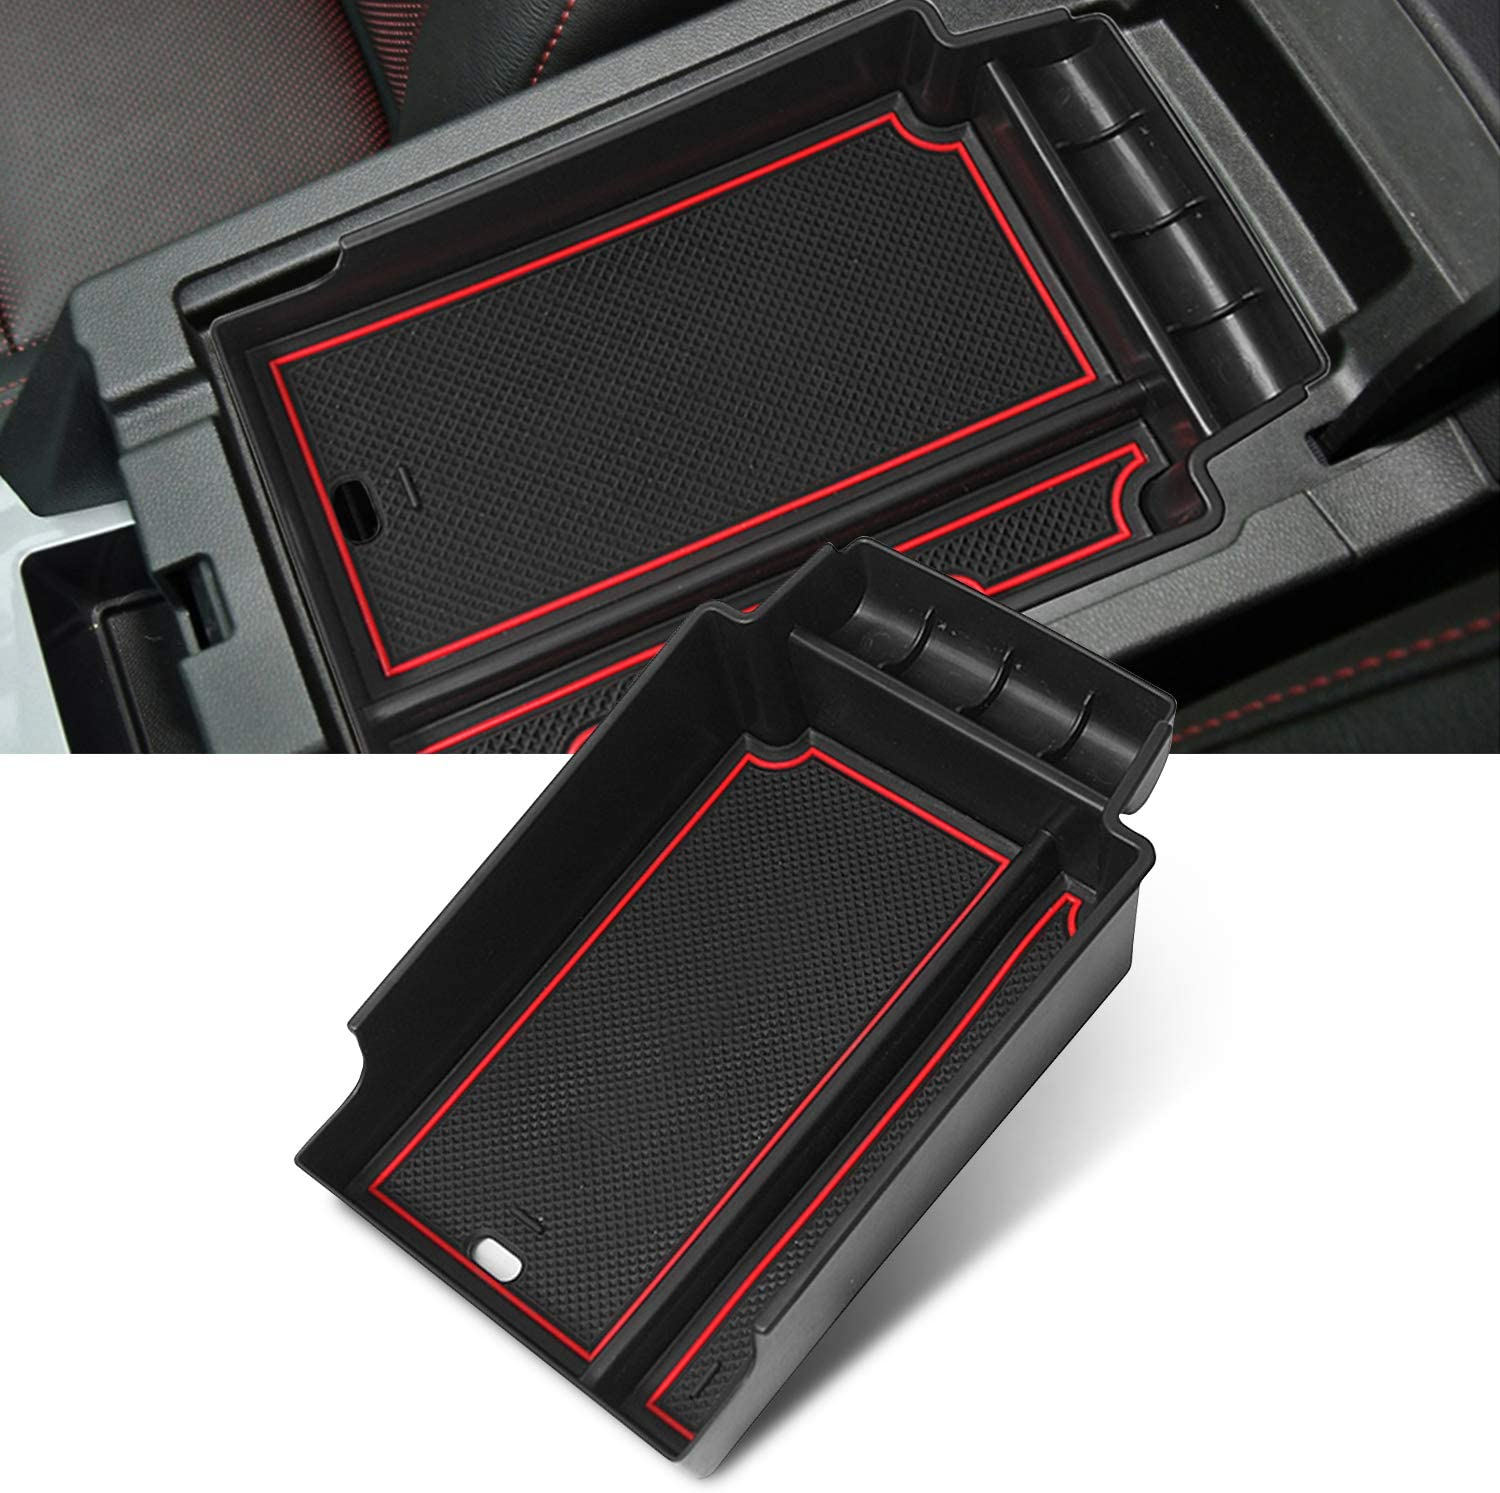 YEE PIN 2019 Blazer Center Console Organizer Tray Blazer Armrest Tray Armrest Box Secondary Storage Insert ABS Materials Tray Compatible with 2019 2020 Chevrolet Blazer Red